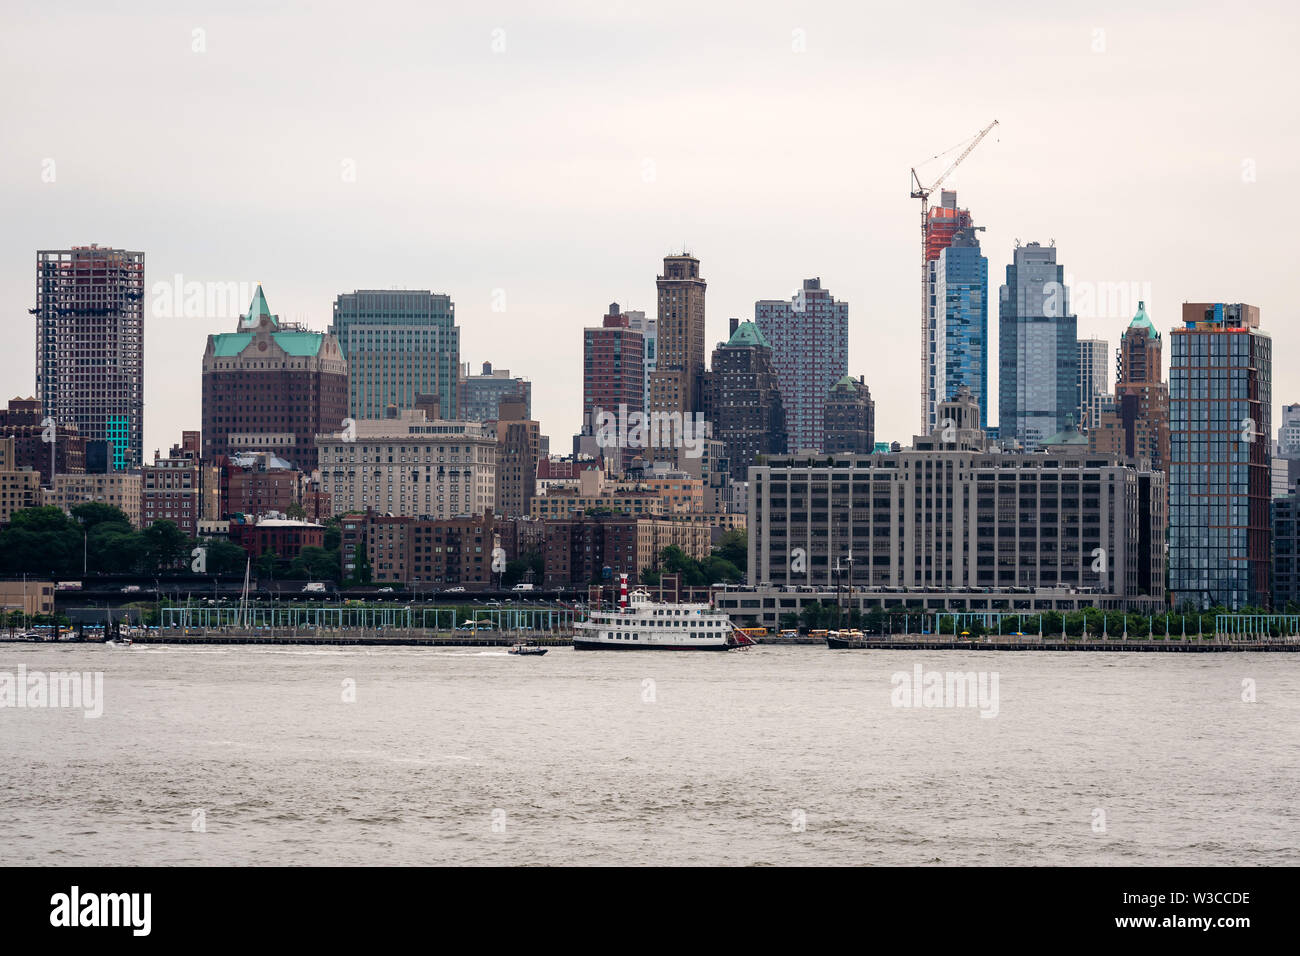 New York, USA - June 7, 2019:  Skyline and modern office buildings of Midtown Manhattan viewed from across the Hudson River. - Image - Stock Image